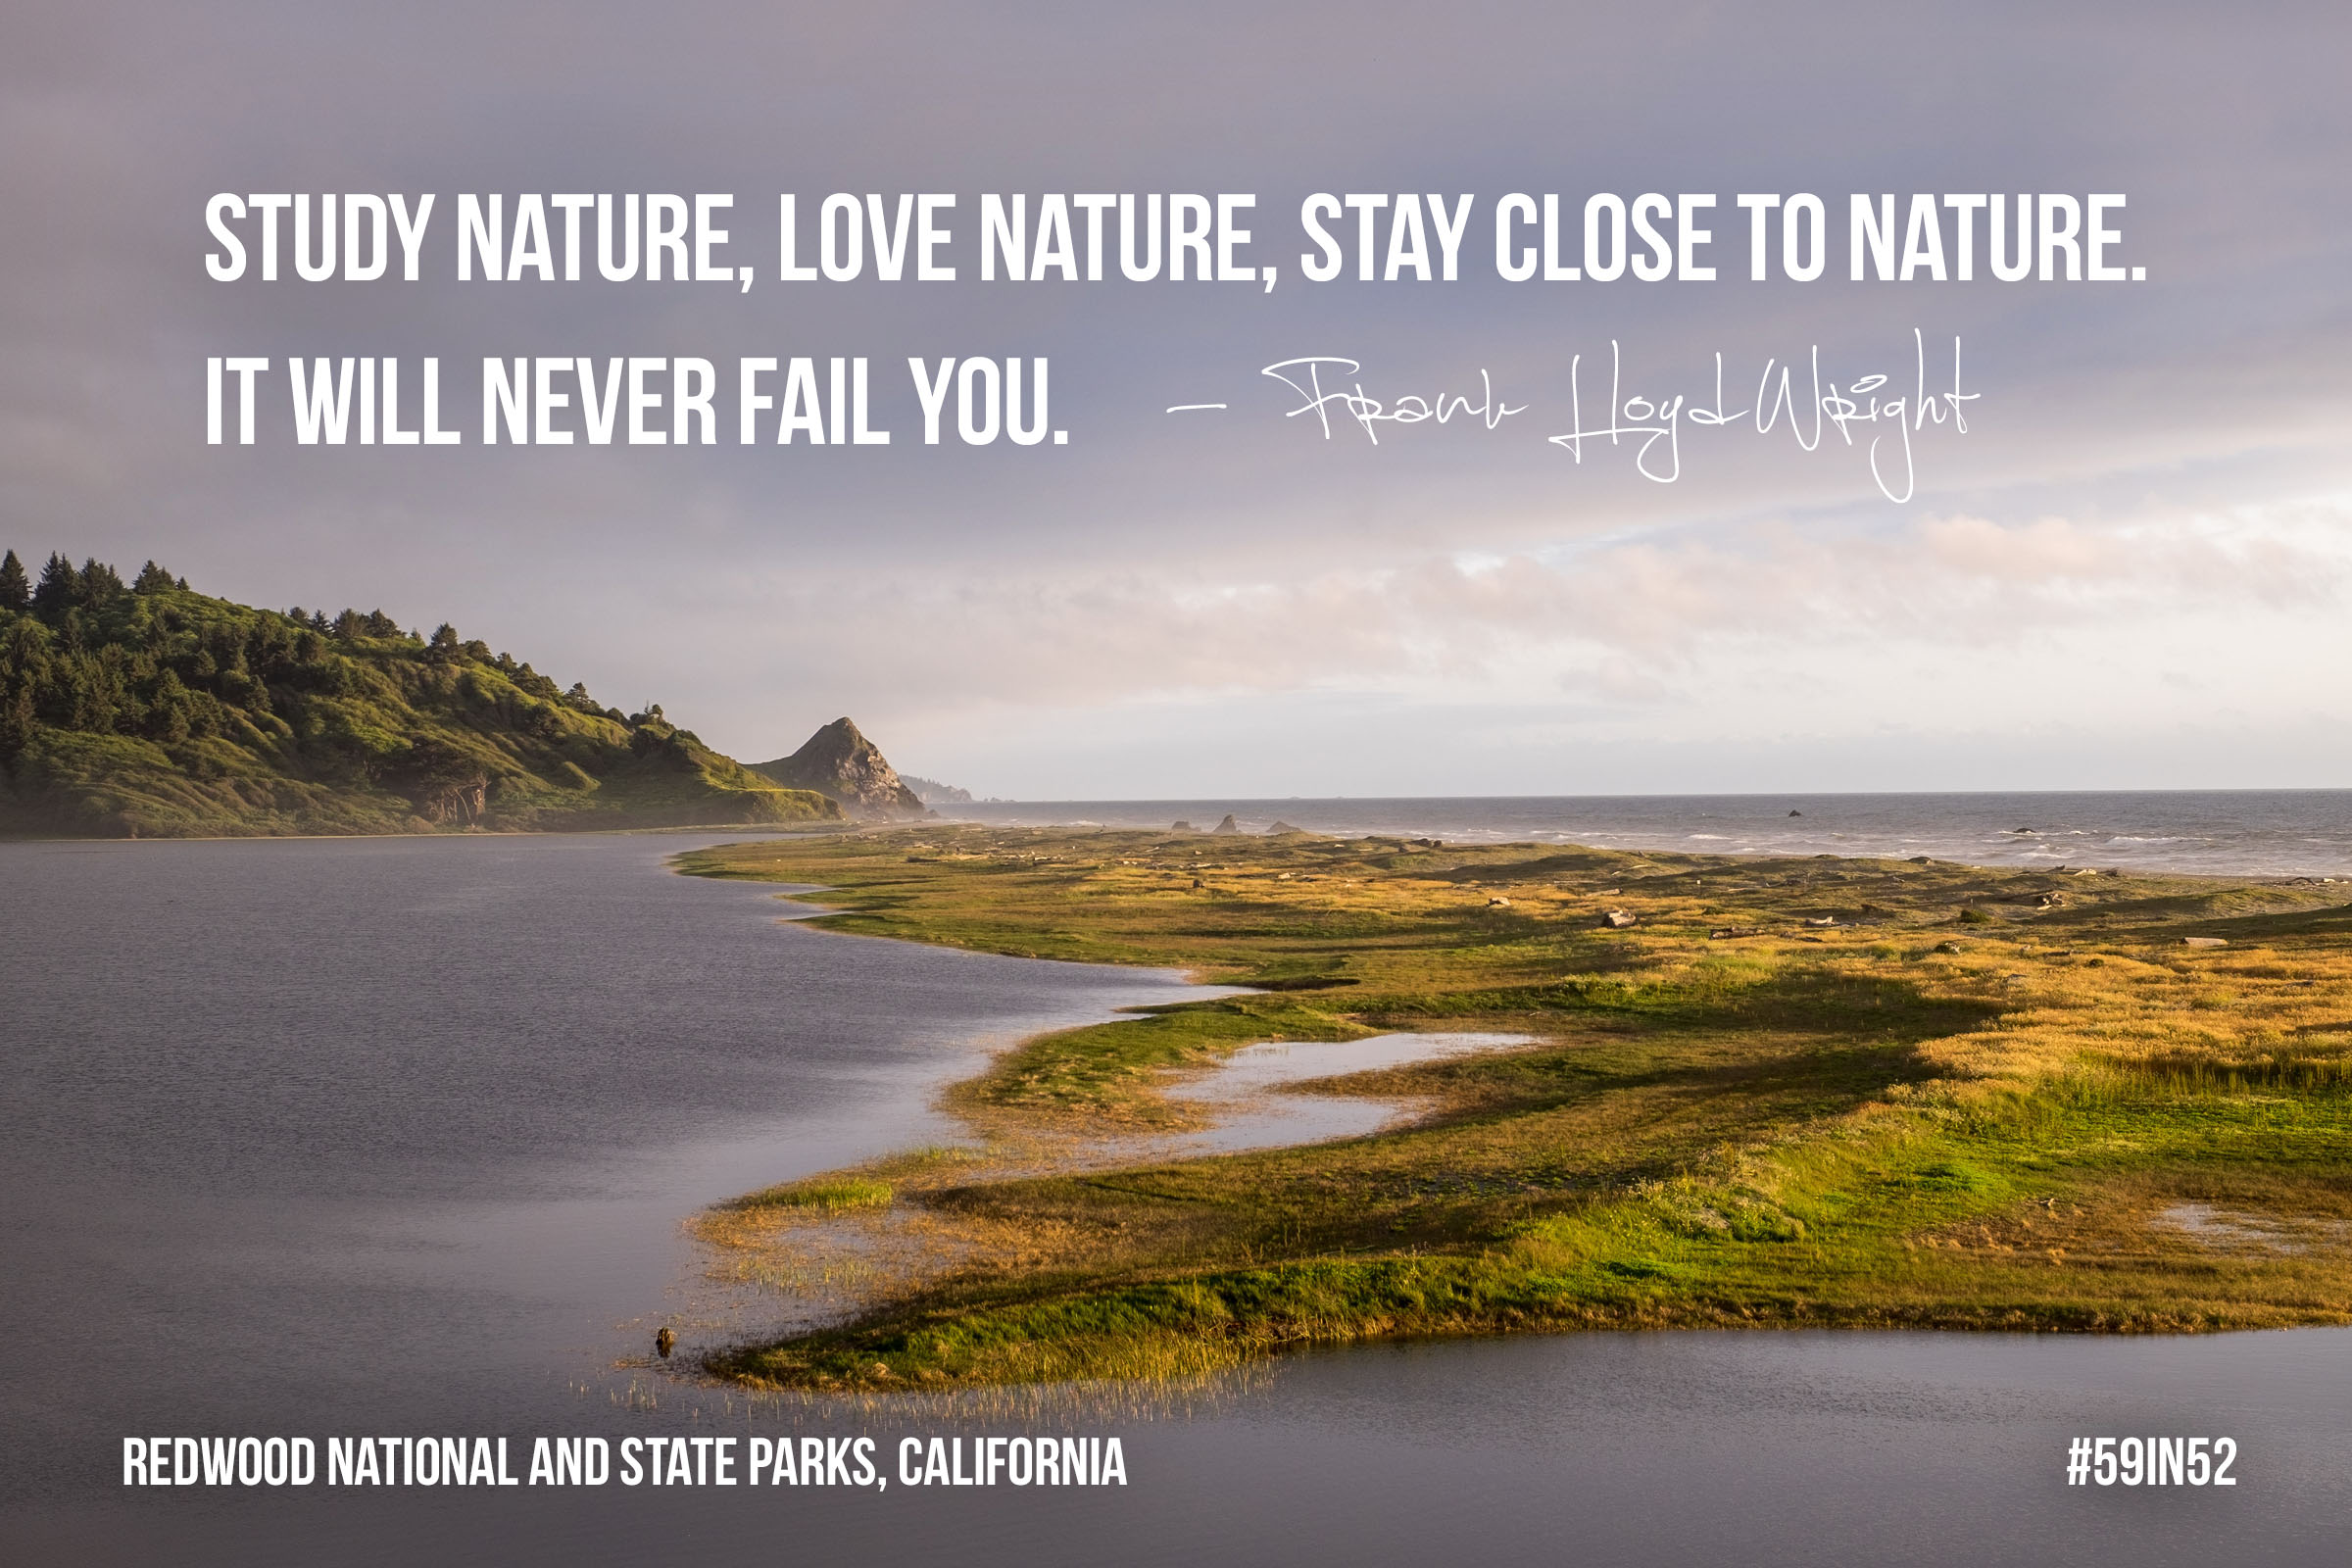 """Study nature, love nature, stay close to nature. It will never fail you."" – Frank Lloyd Wright"